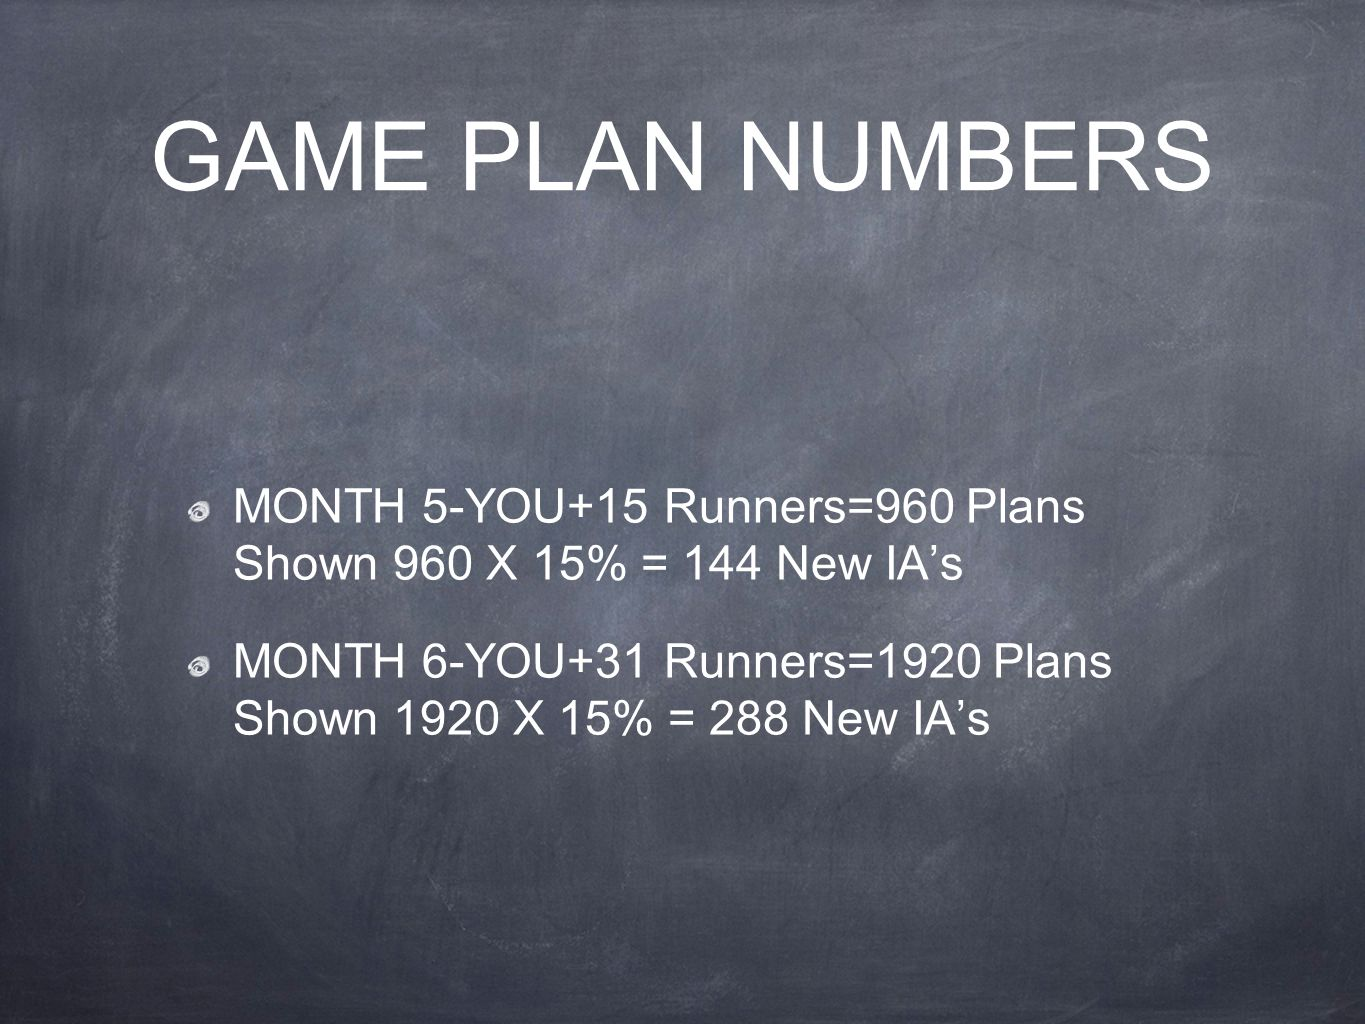 GAME PLAN NUMBERS MONTH 5-YOU+15 Runners=960 Plans Shown 960 X 15% = 144 New IA's.